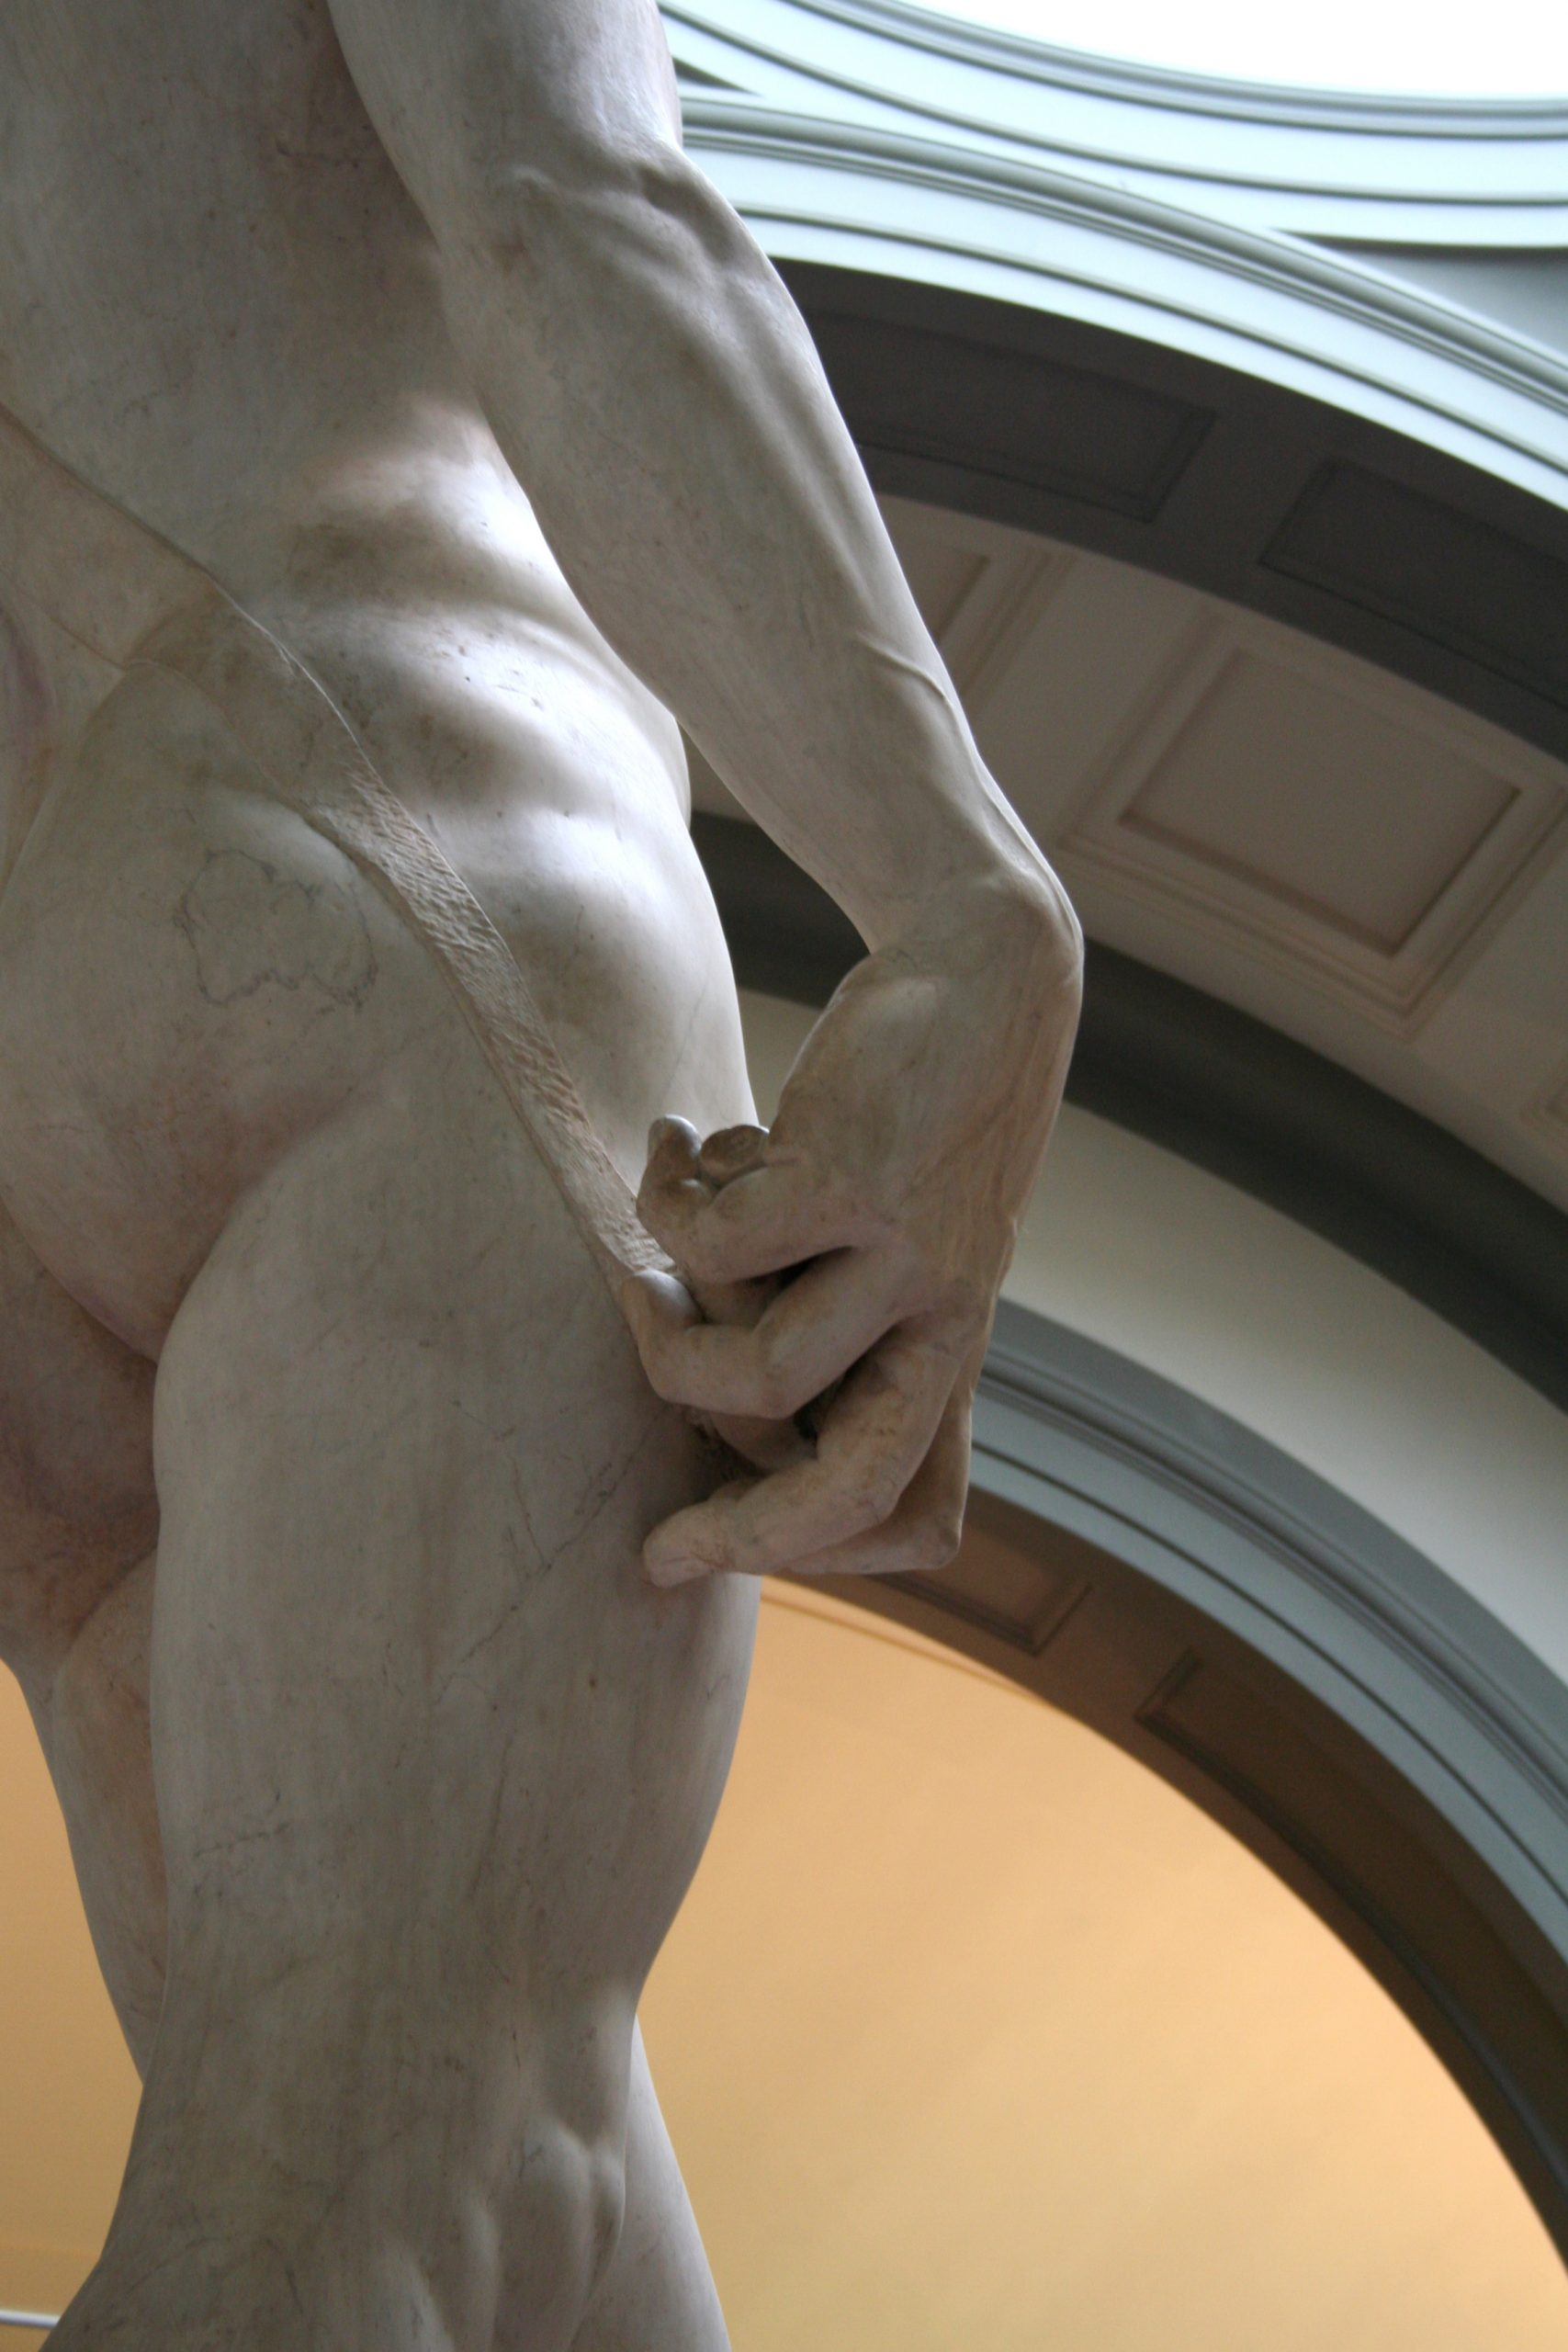 2007, Michelangelo, David (detail), Florence, Italy